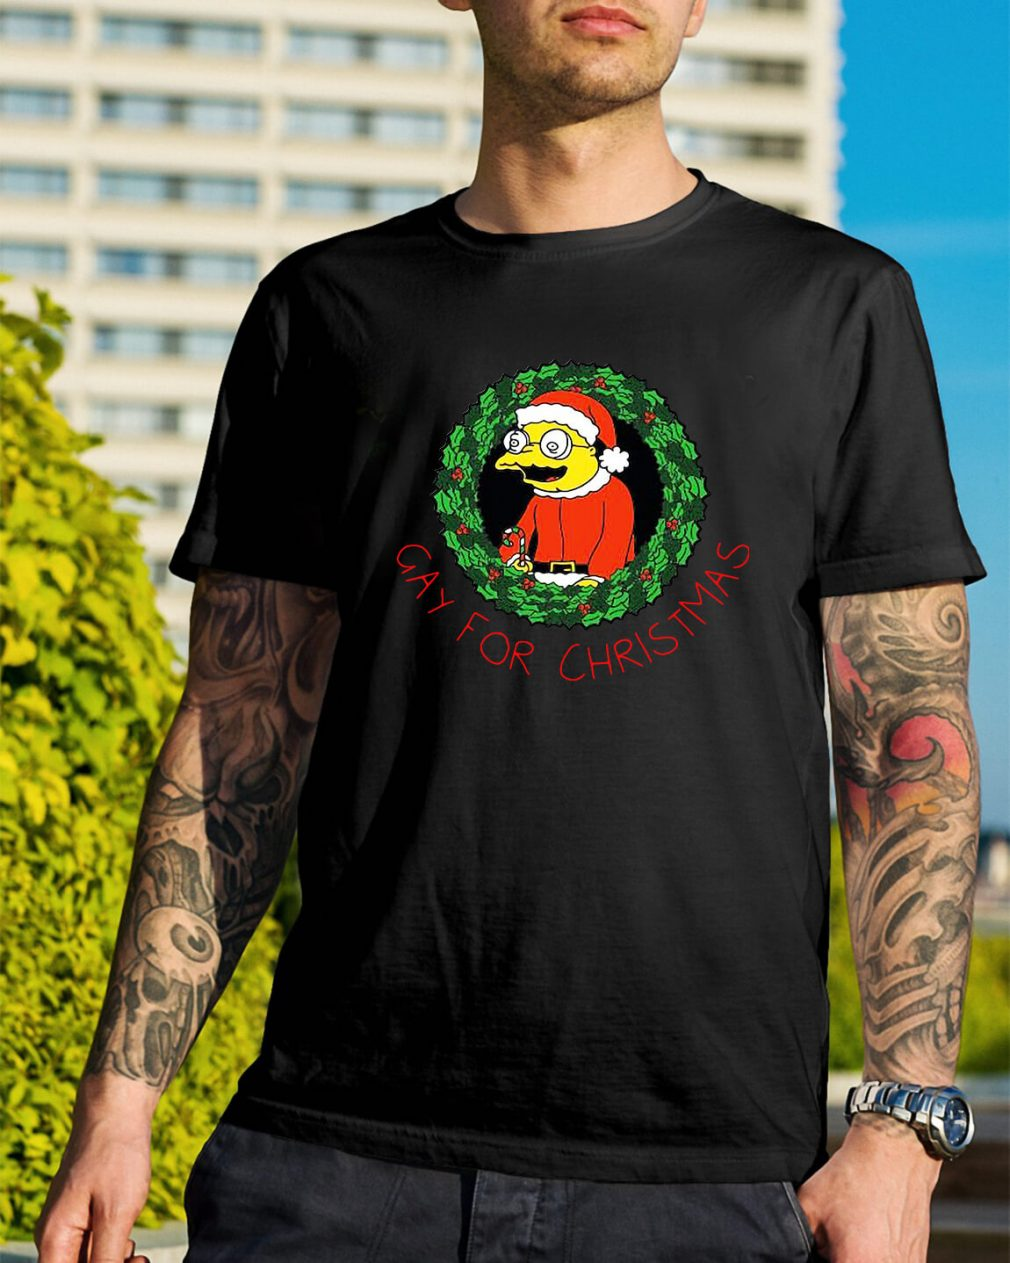 The Simpsons gay for Christmas Guys Shirt